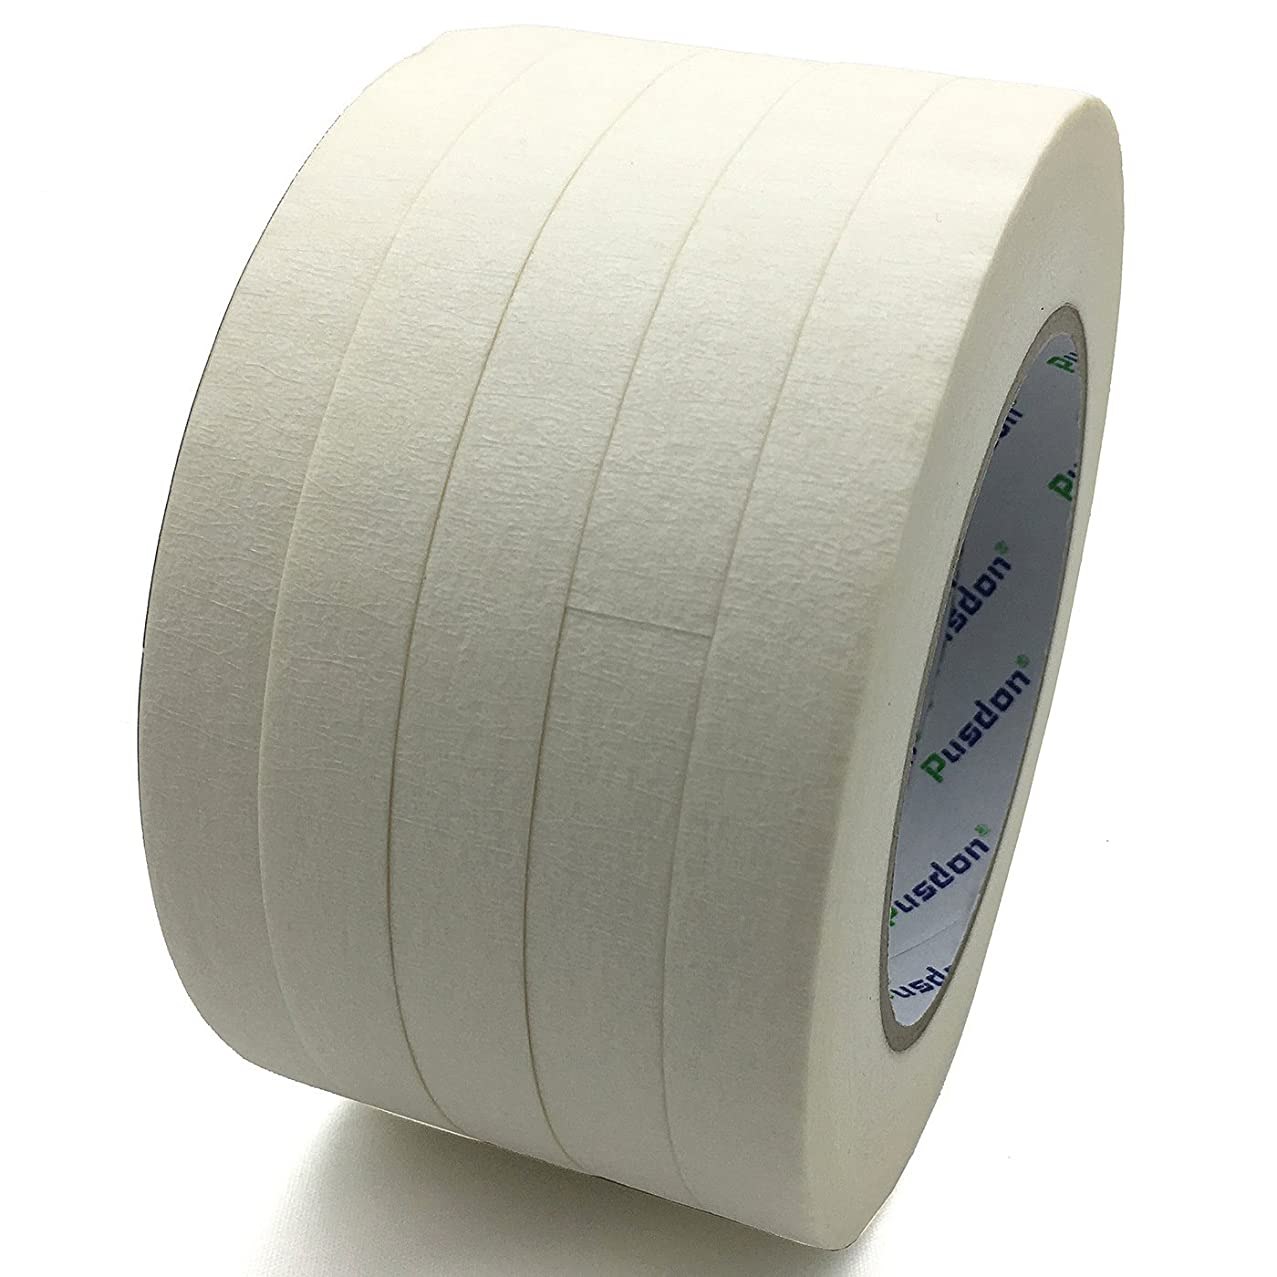 Pusdon Masking Tape White 5 Rolls, 1 Pack, Each Roll 1/2-Inch x 60 Yards, Ideal for Label Office Arts Crafts School Use